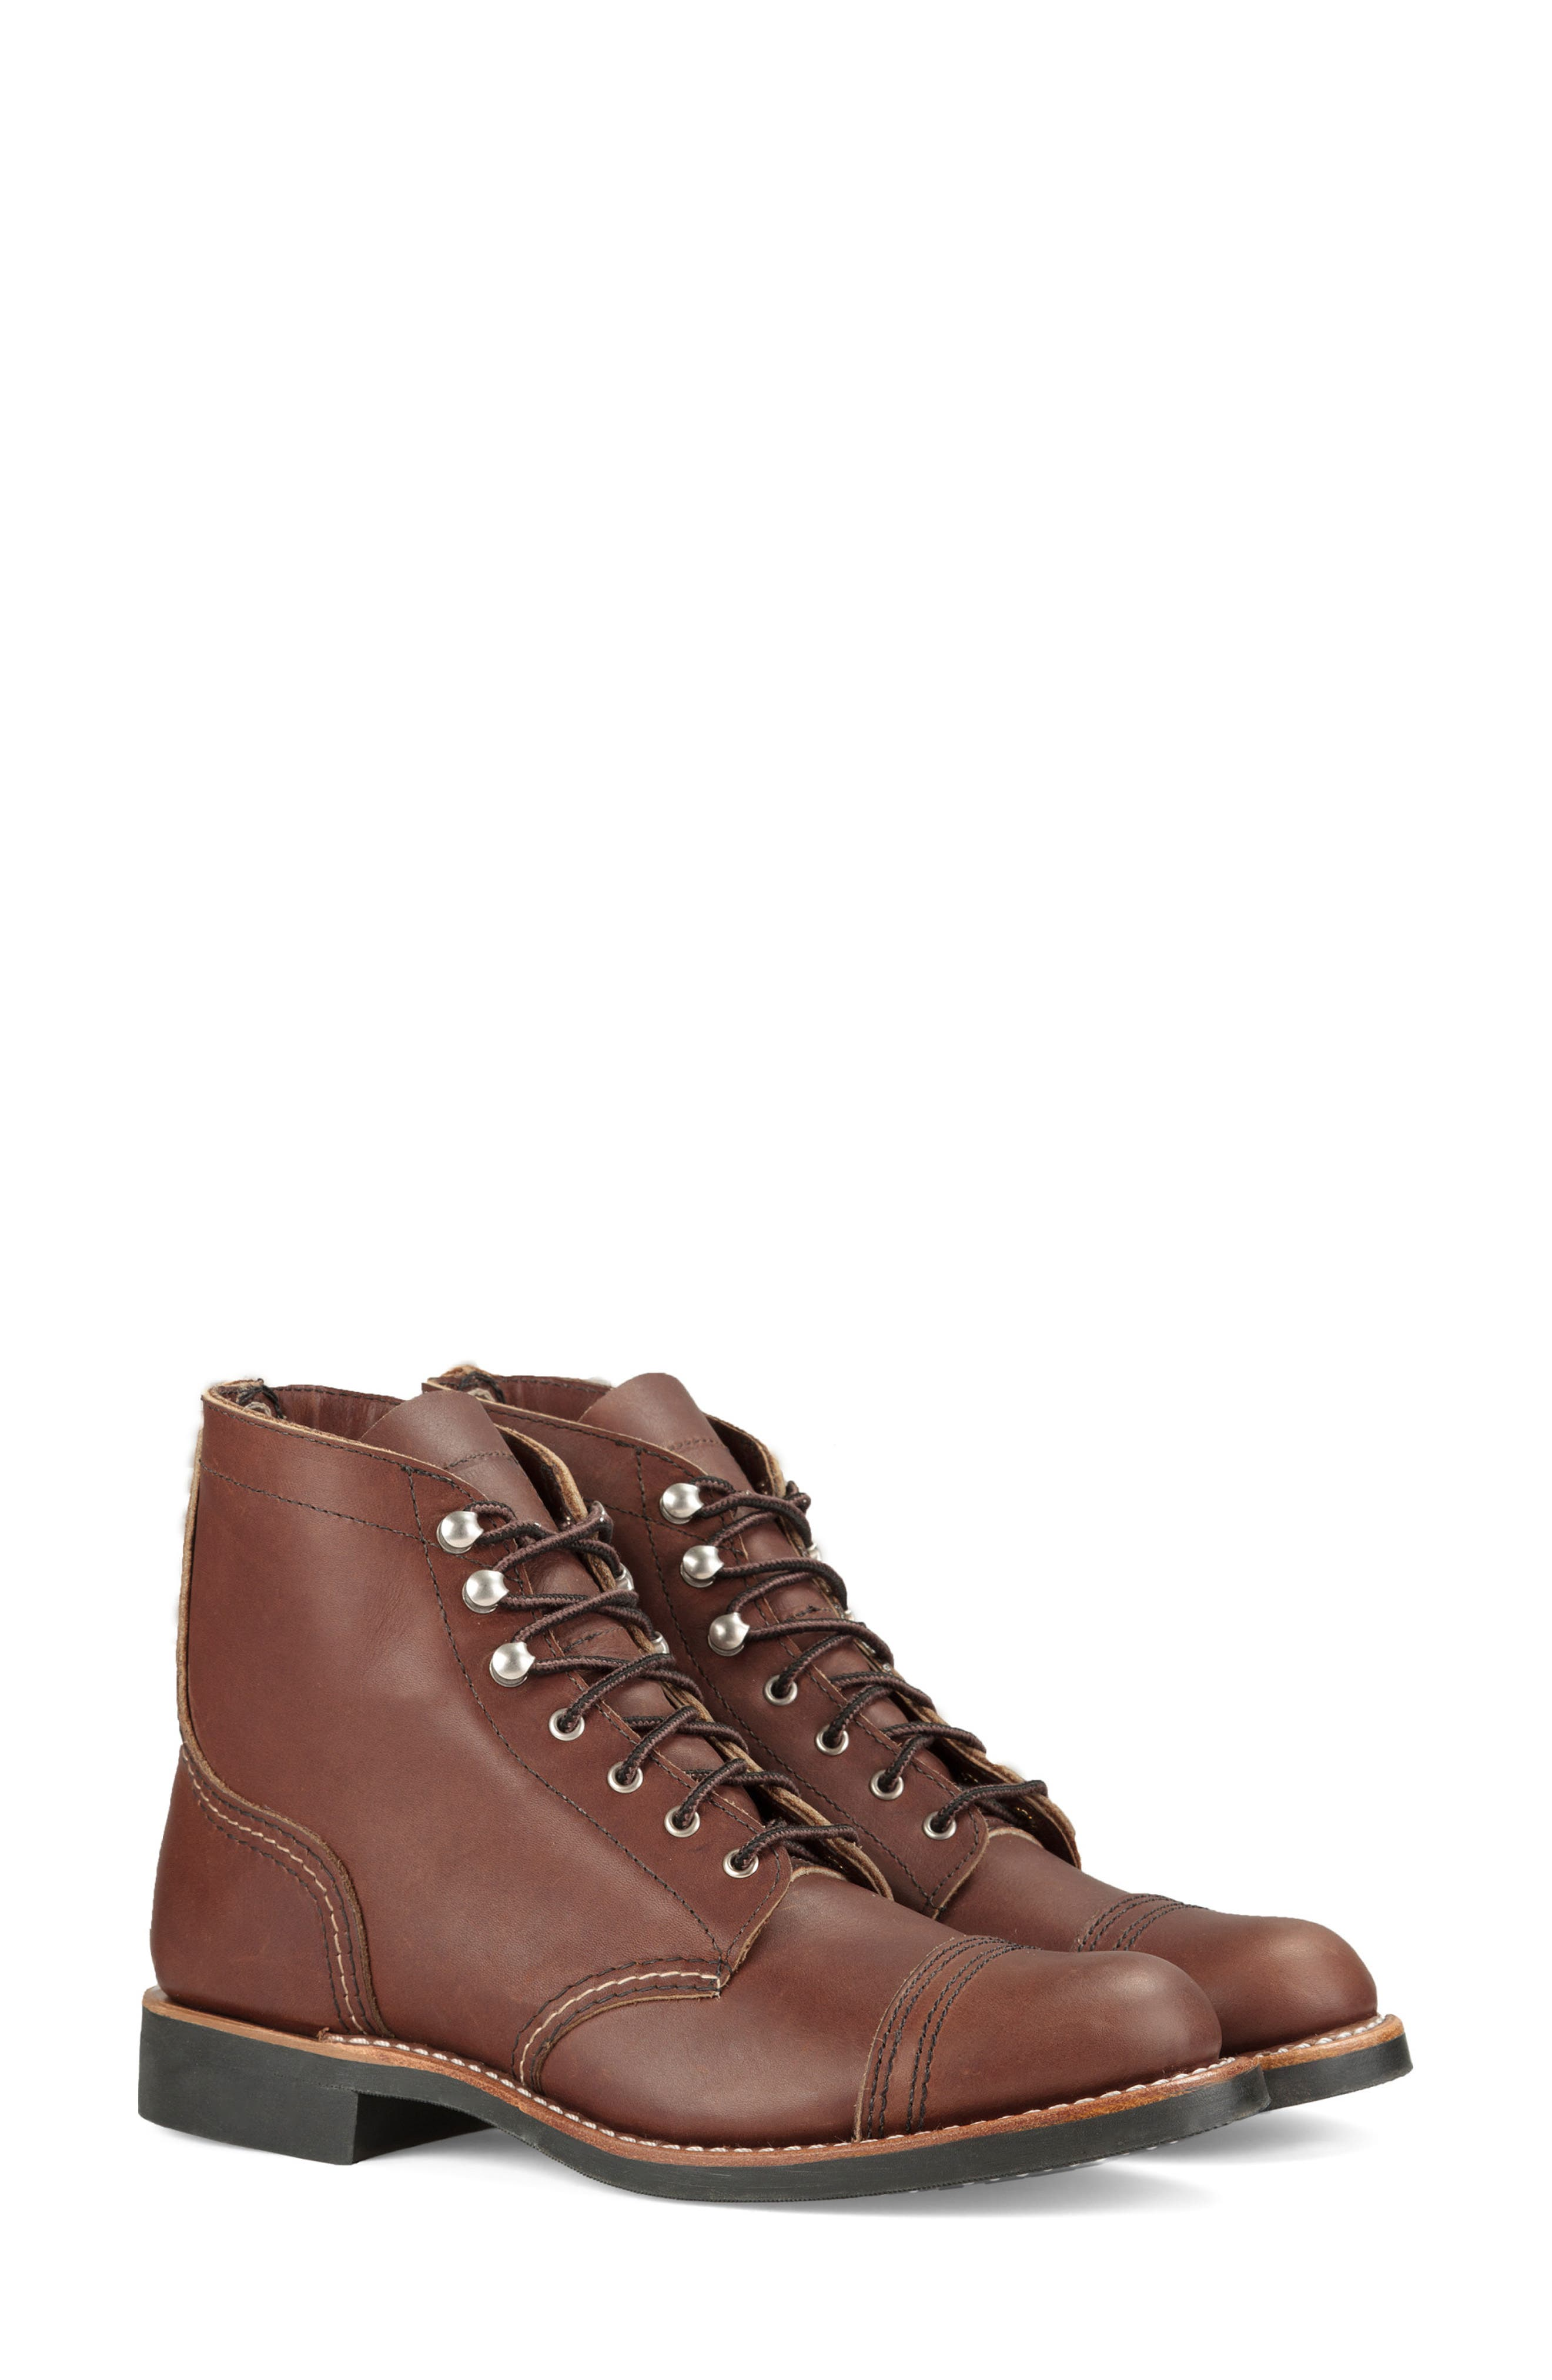 RED WING Iron Ranger Boot in Amber Harness Leather